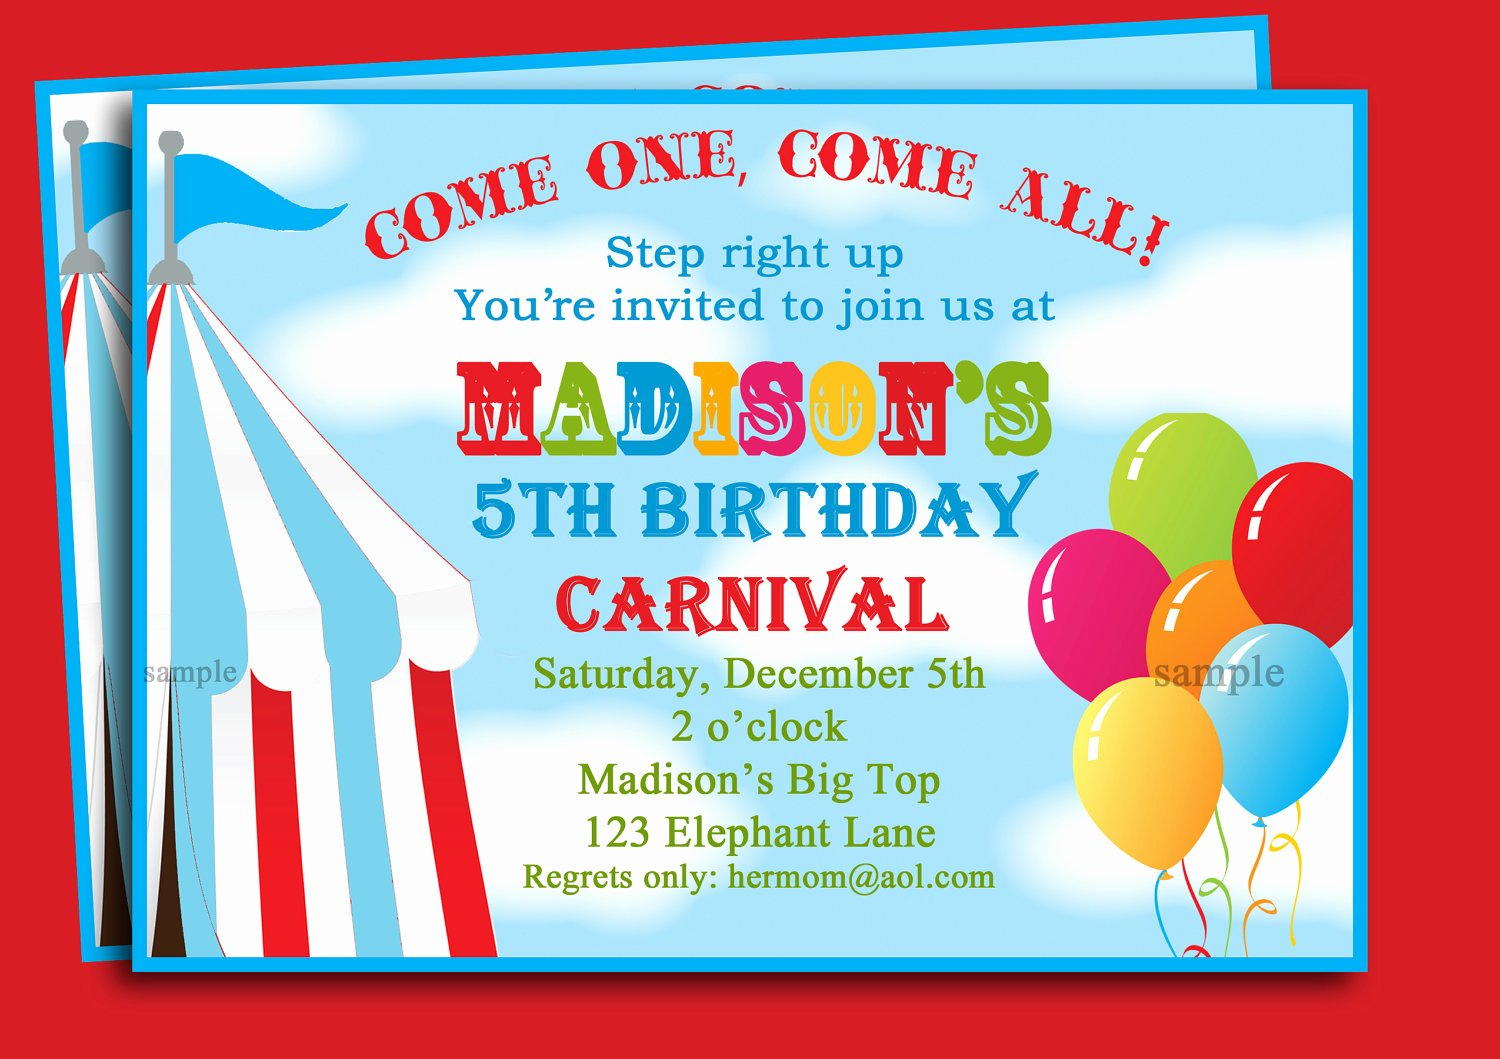 Carnival Birthday Party Invitations Inspirational Free Printable Carnival Birthday Party Invitations Free Invitation Templates Drevio